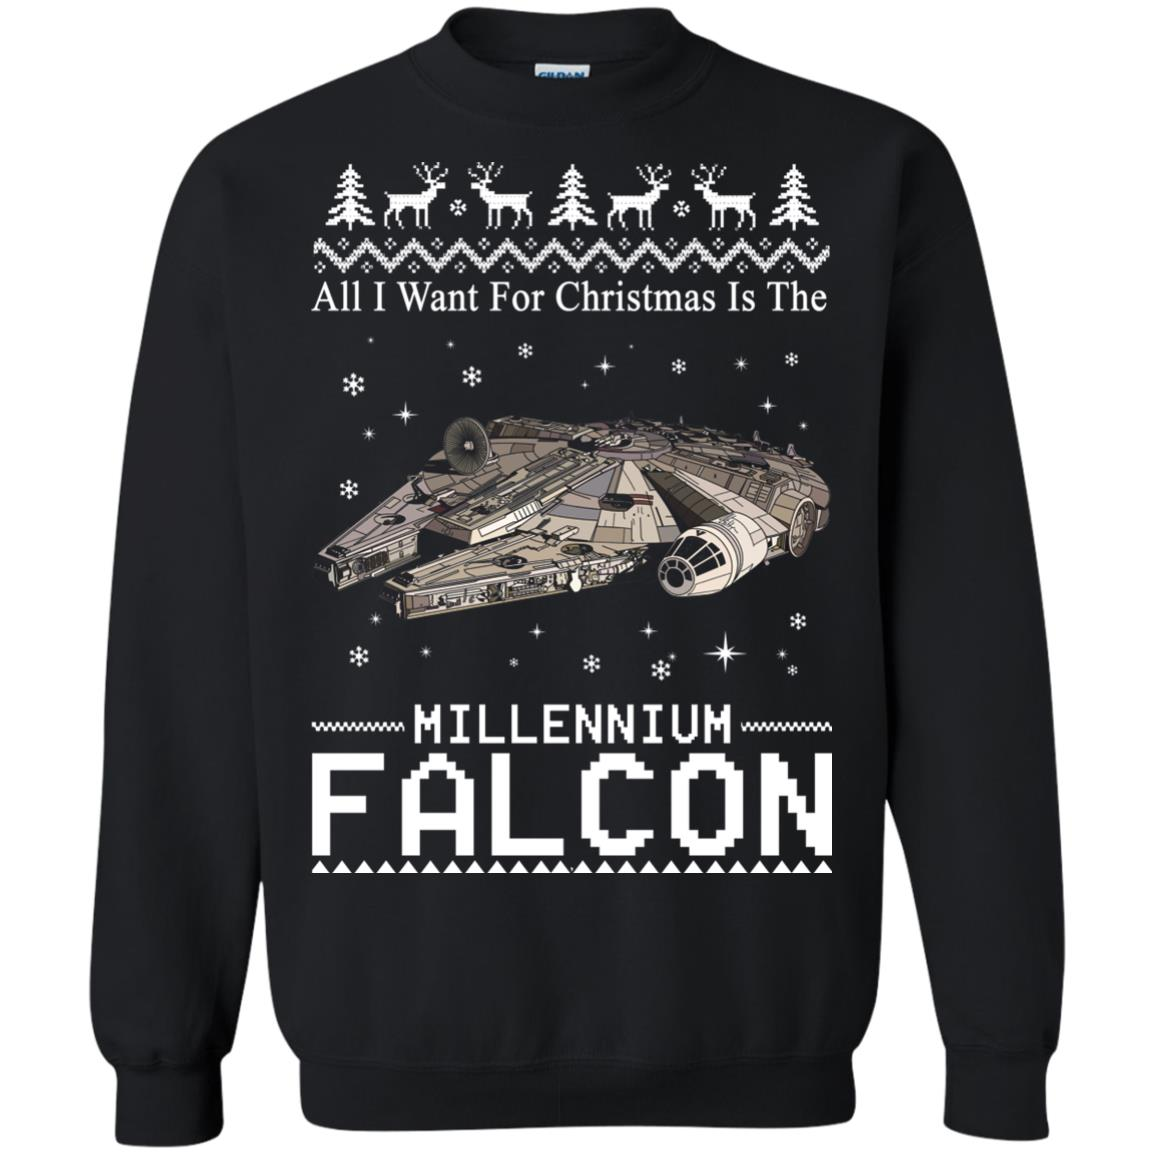 image 2138 - All I Want For Christmas is The Millennium Falcon Sweater, Ugly Sweatshirt